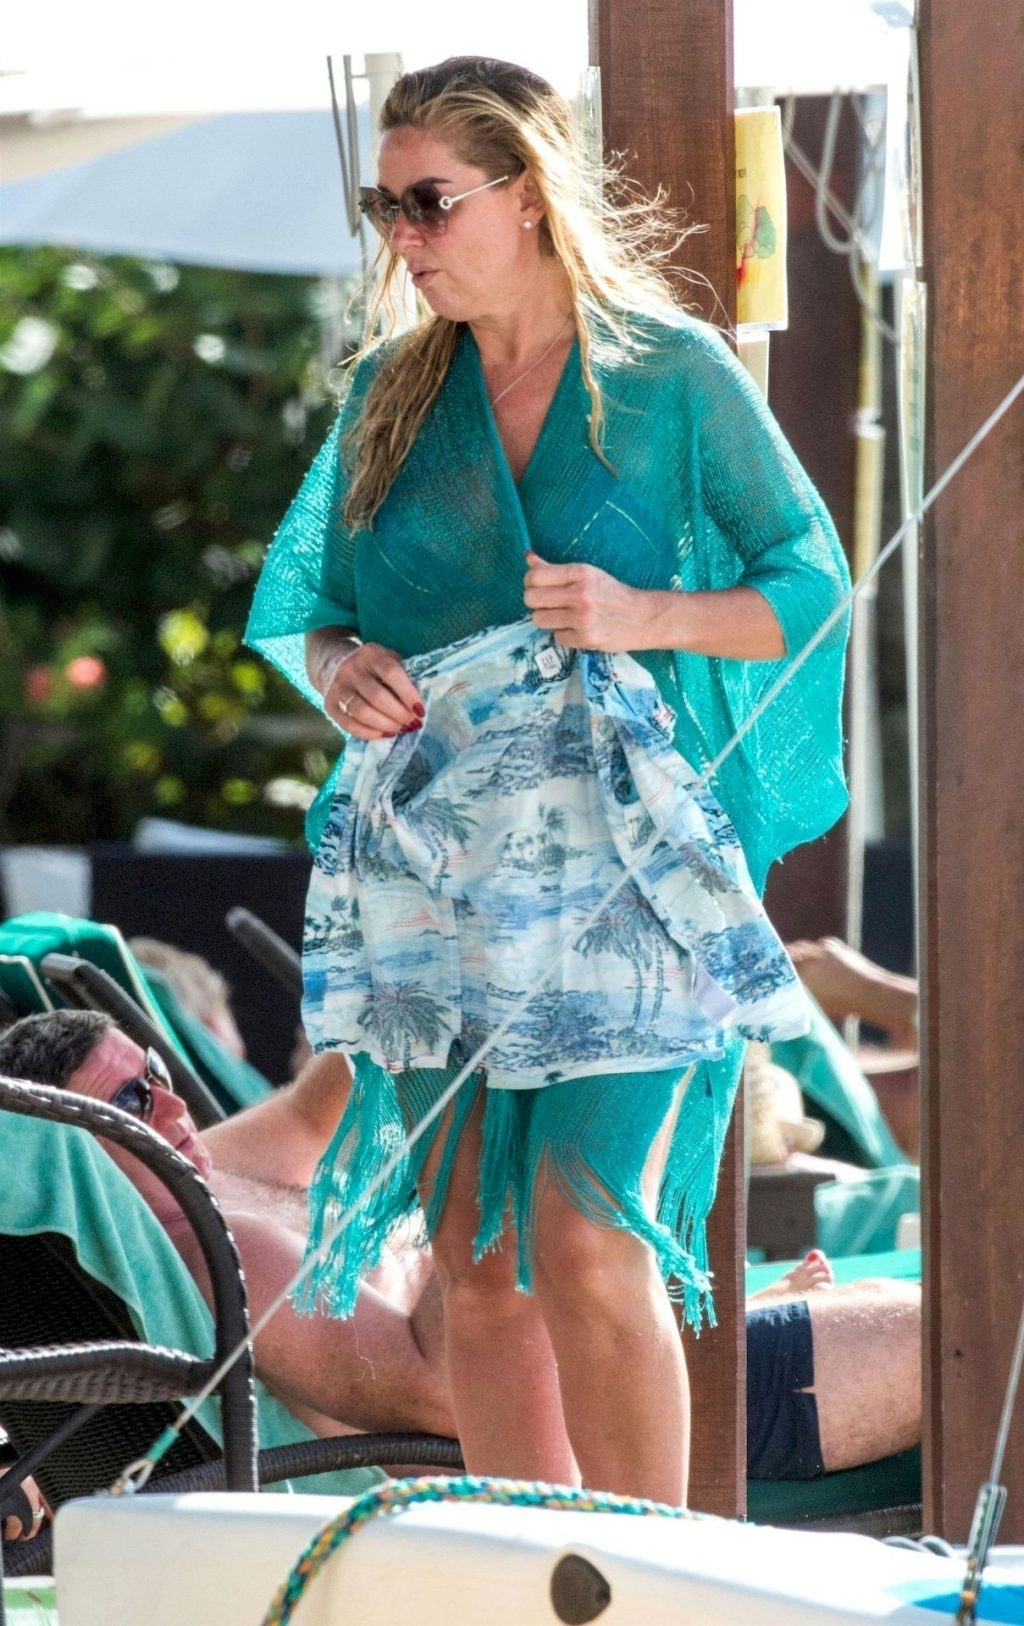 Claire Sweeney Dons her Bikini Out in Barbados (18 Photos)